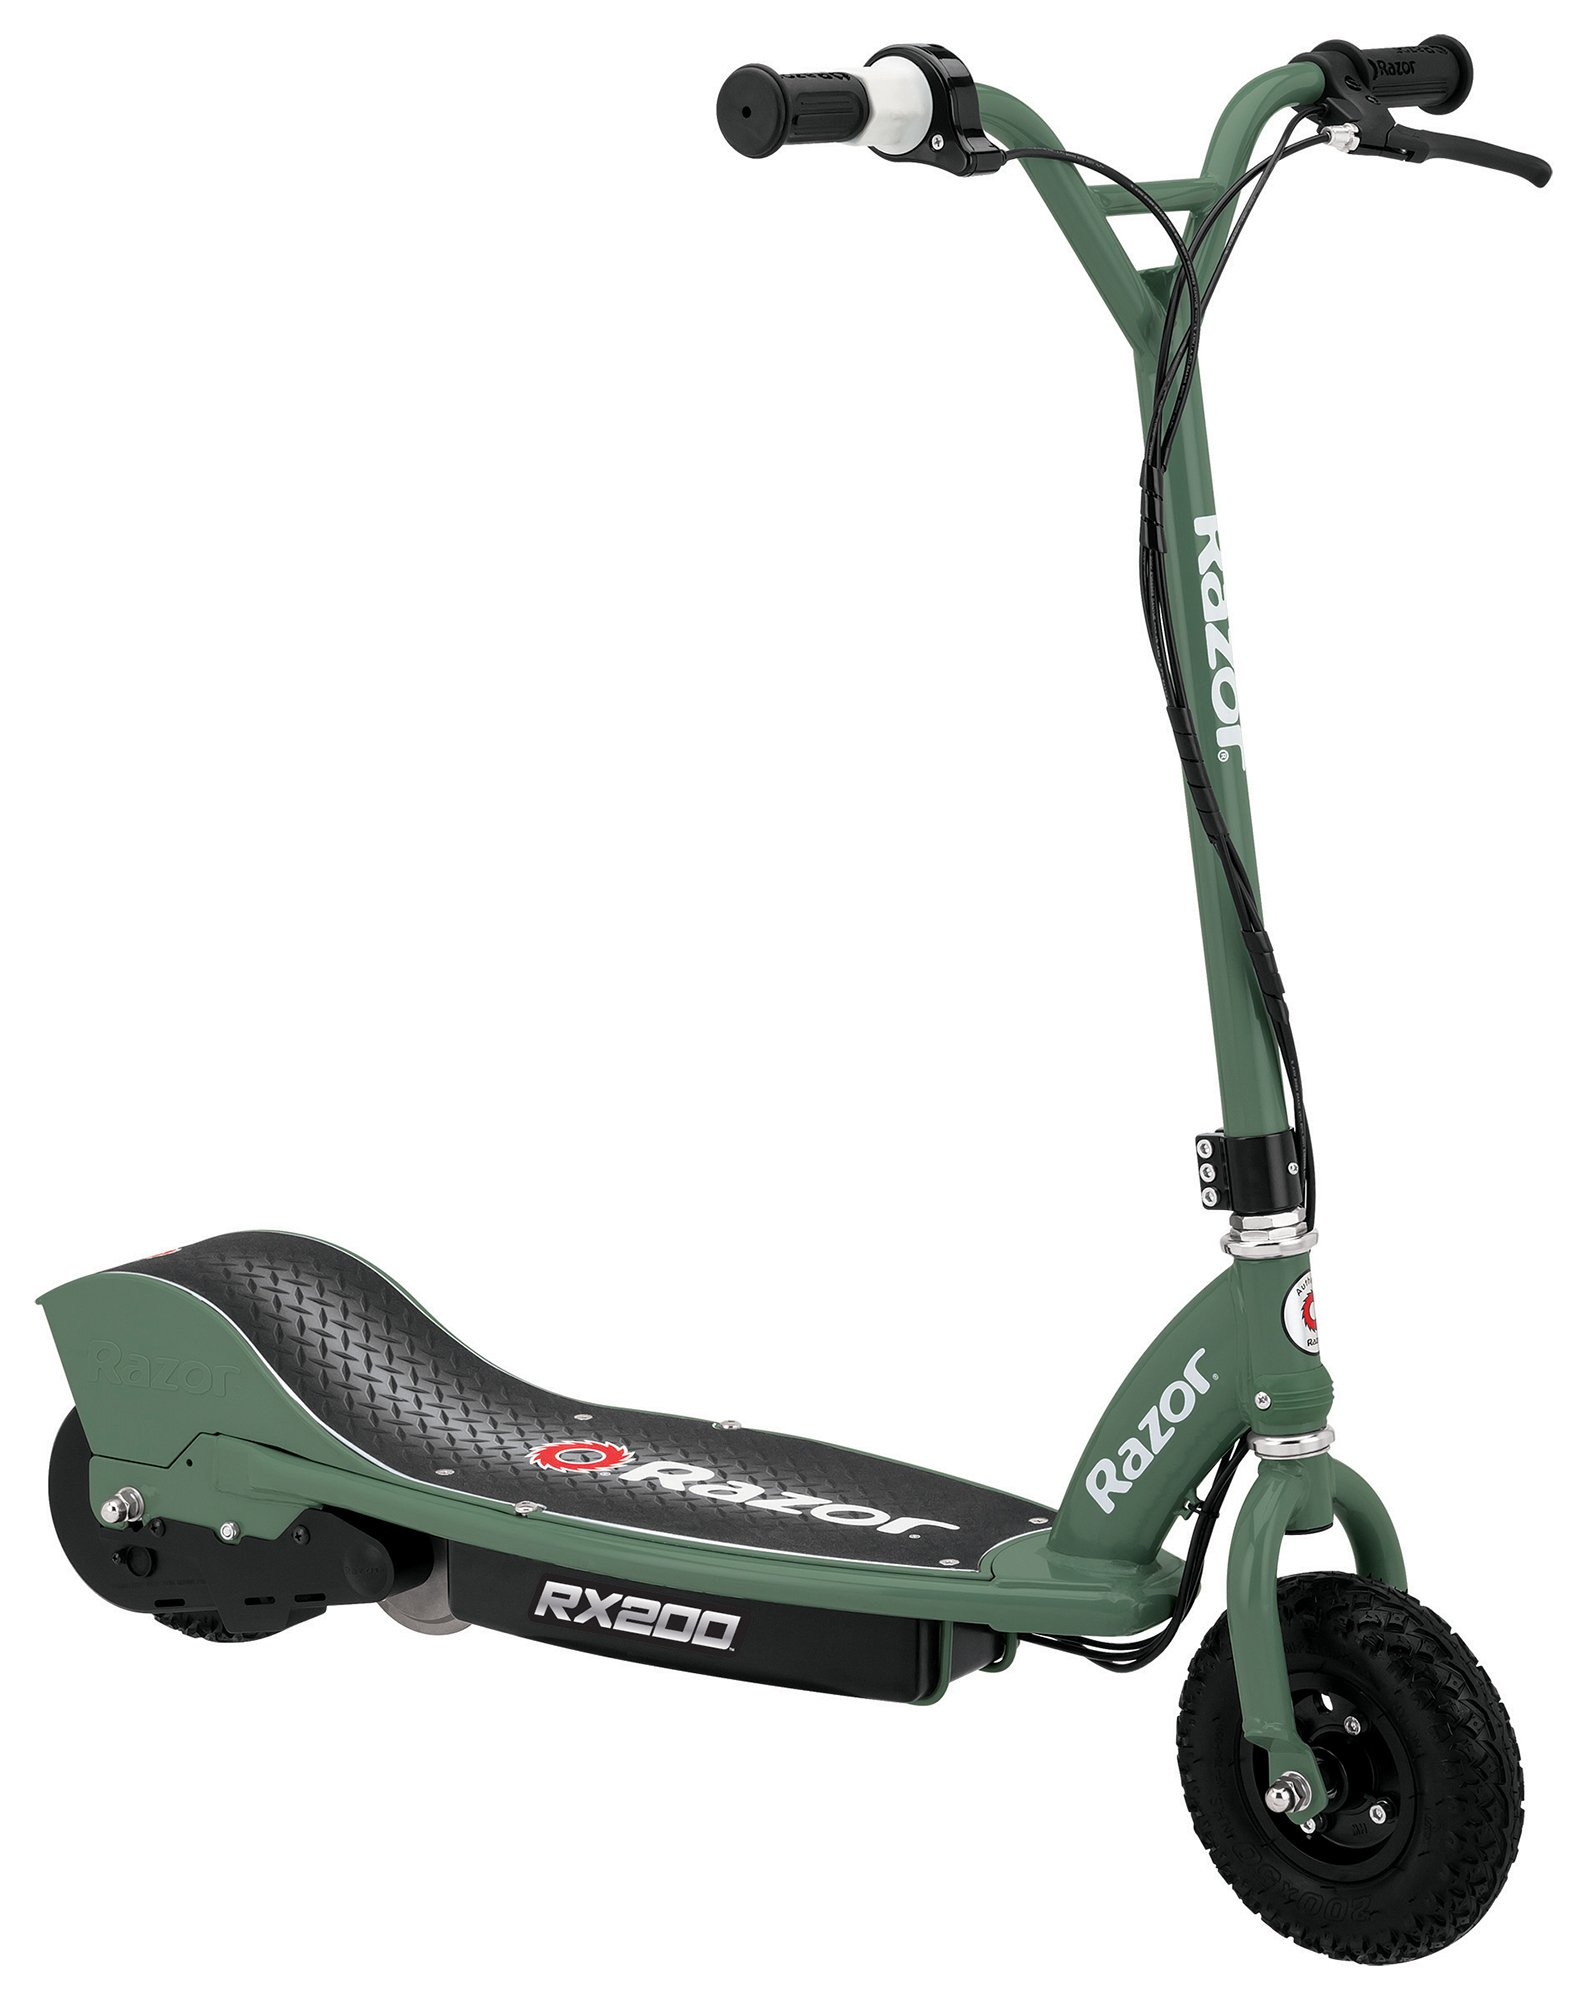 Razor RX200 Electric Off-Road Scooter by Razor